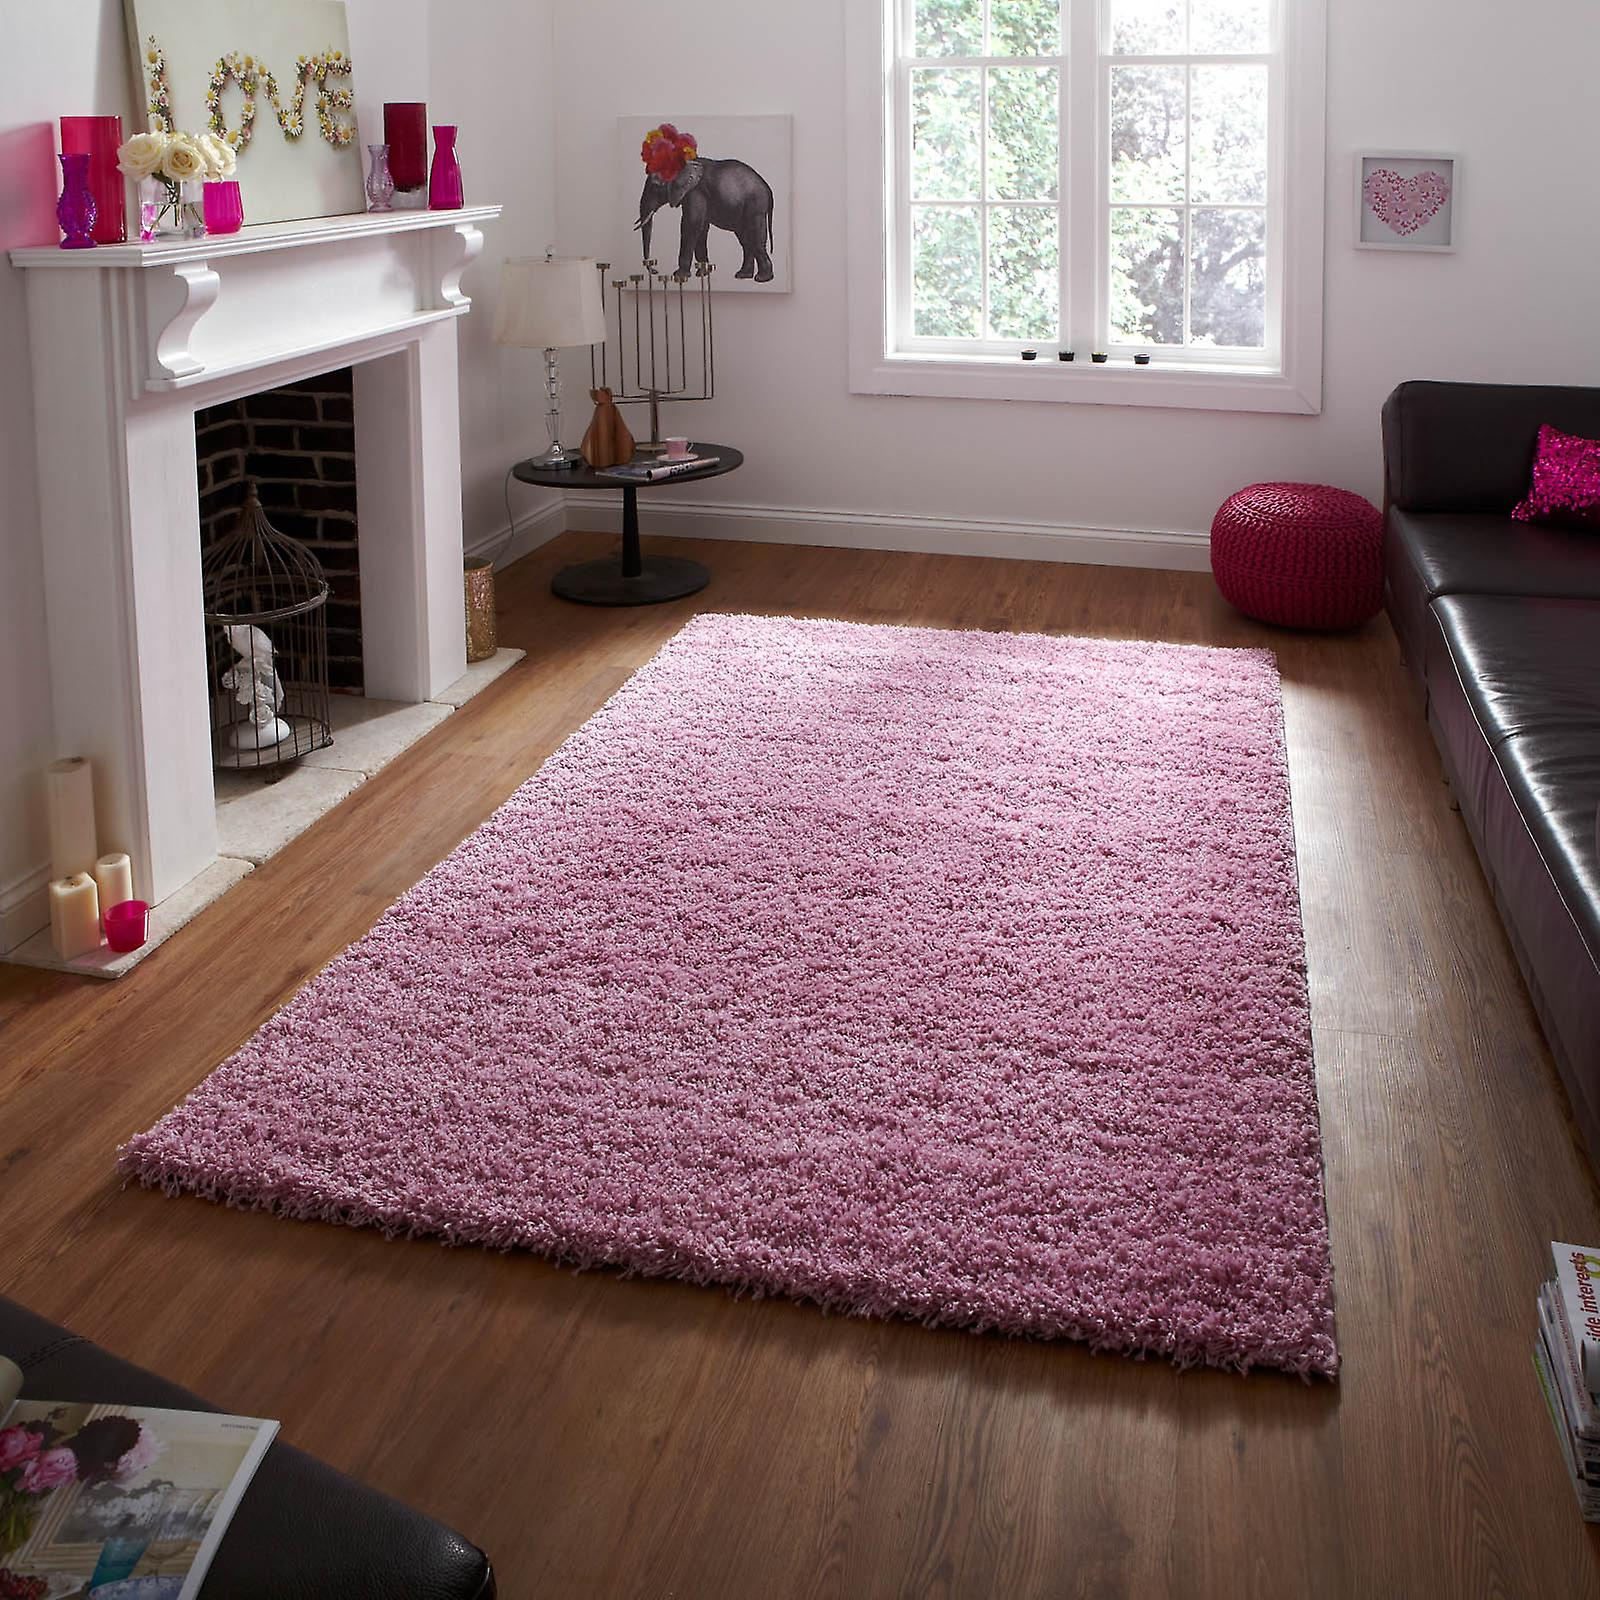 Vista Shaggy Rugs 2236 Pink